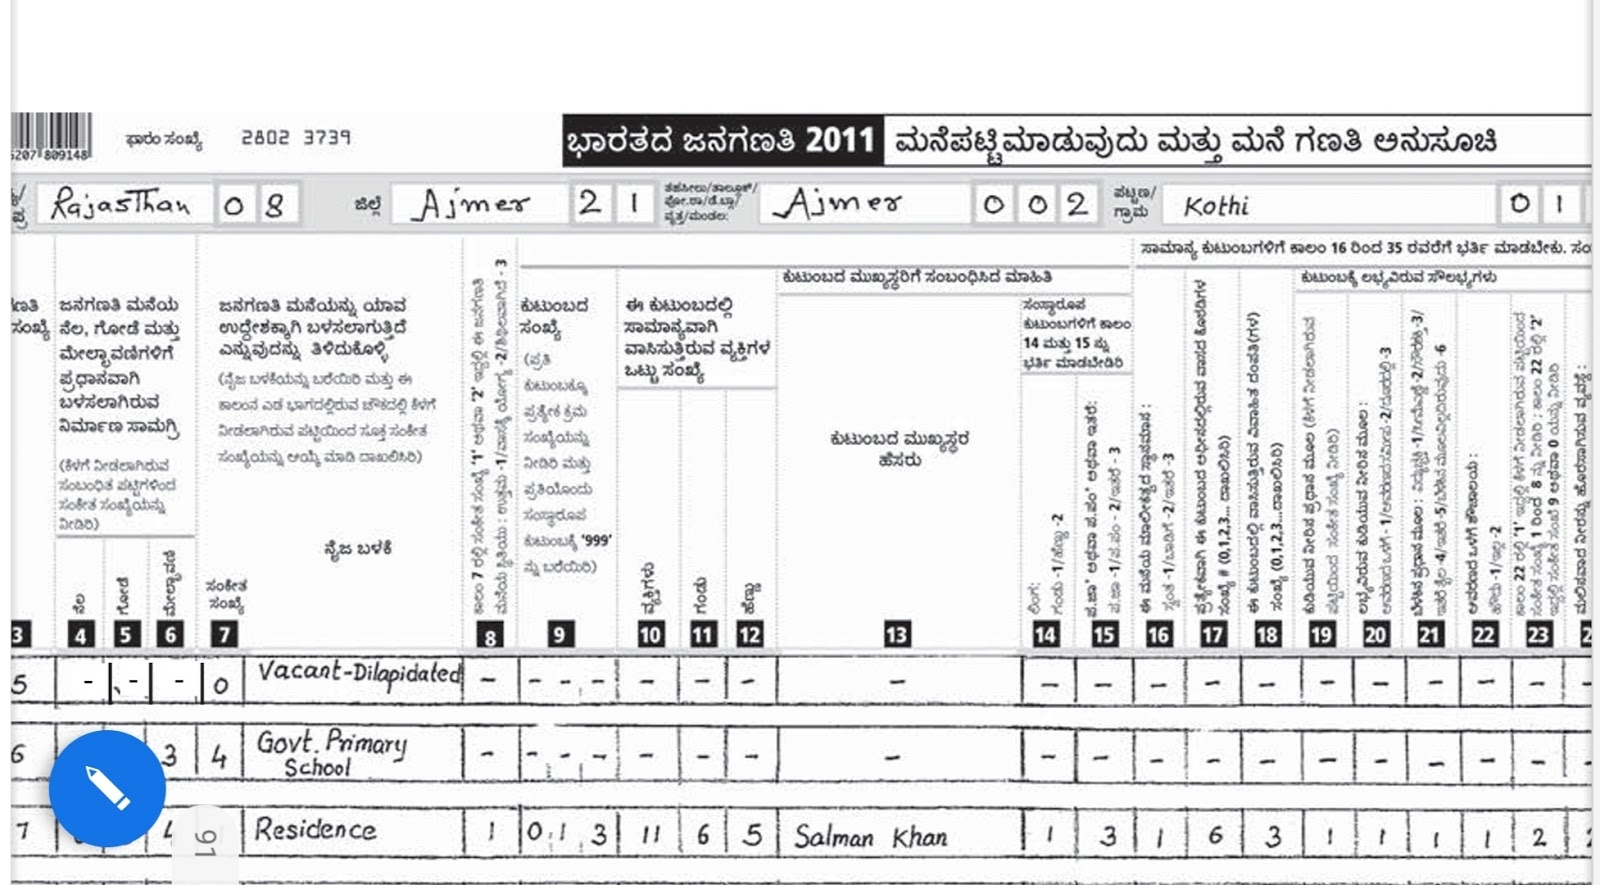 India Census-2011 - Instructions Manual for Filling the Household List and Census Bureau